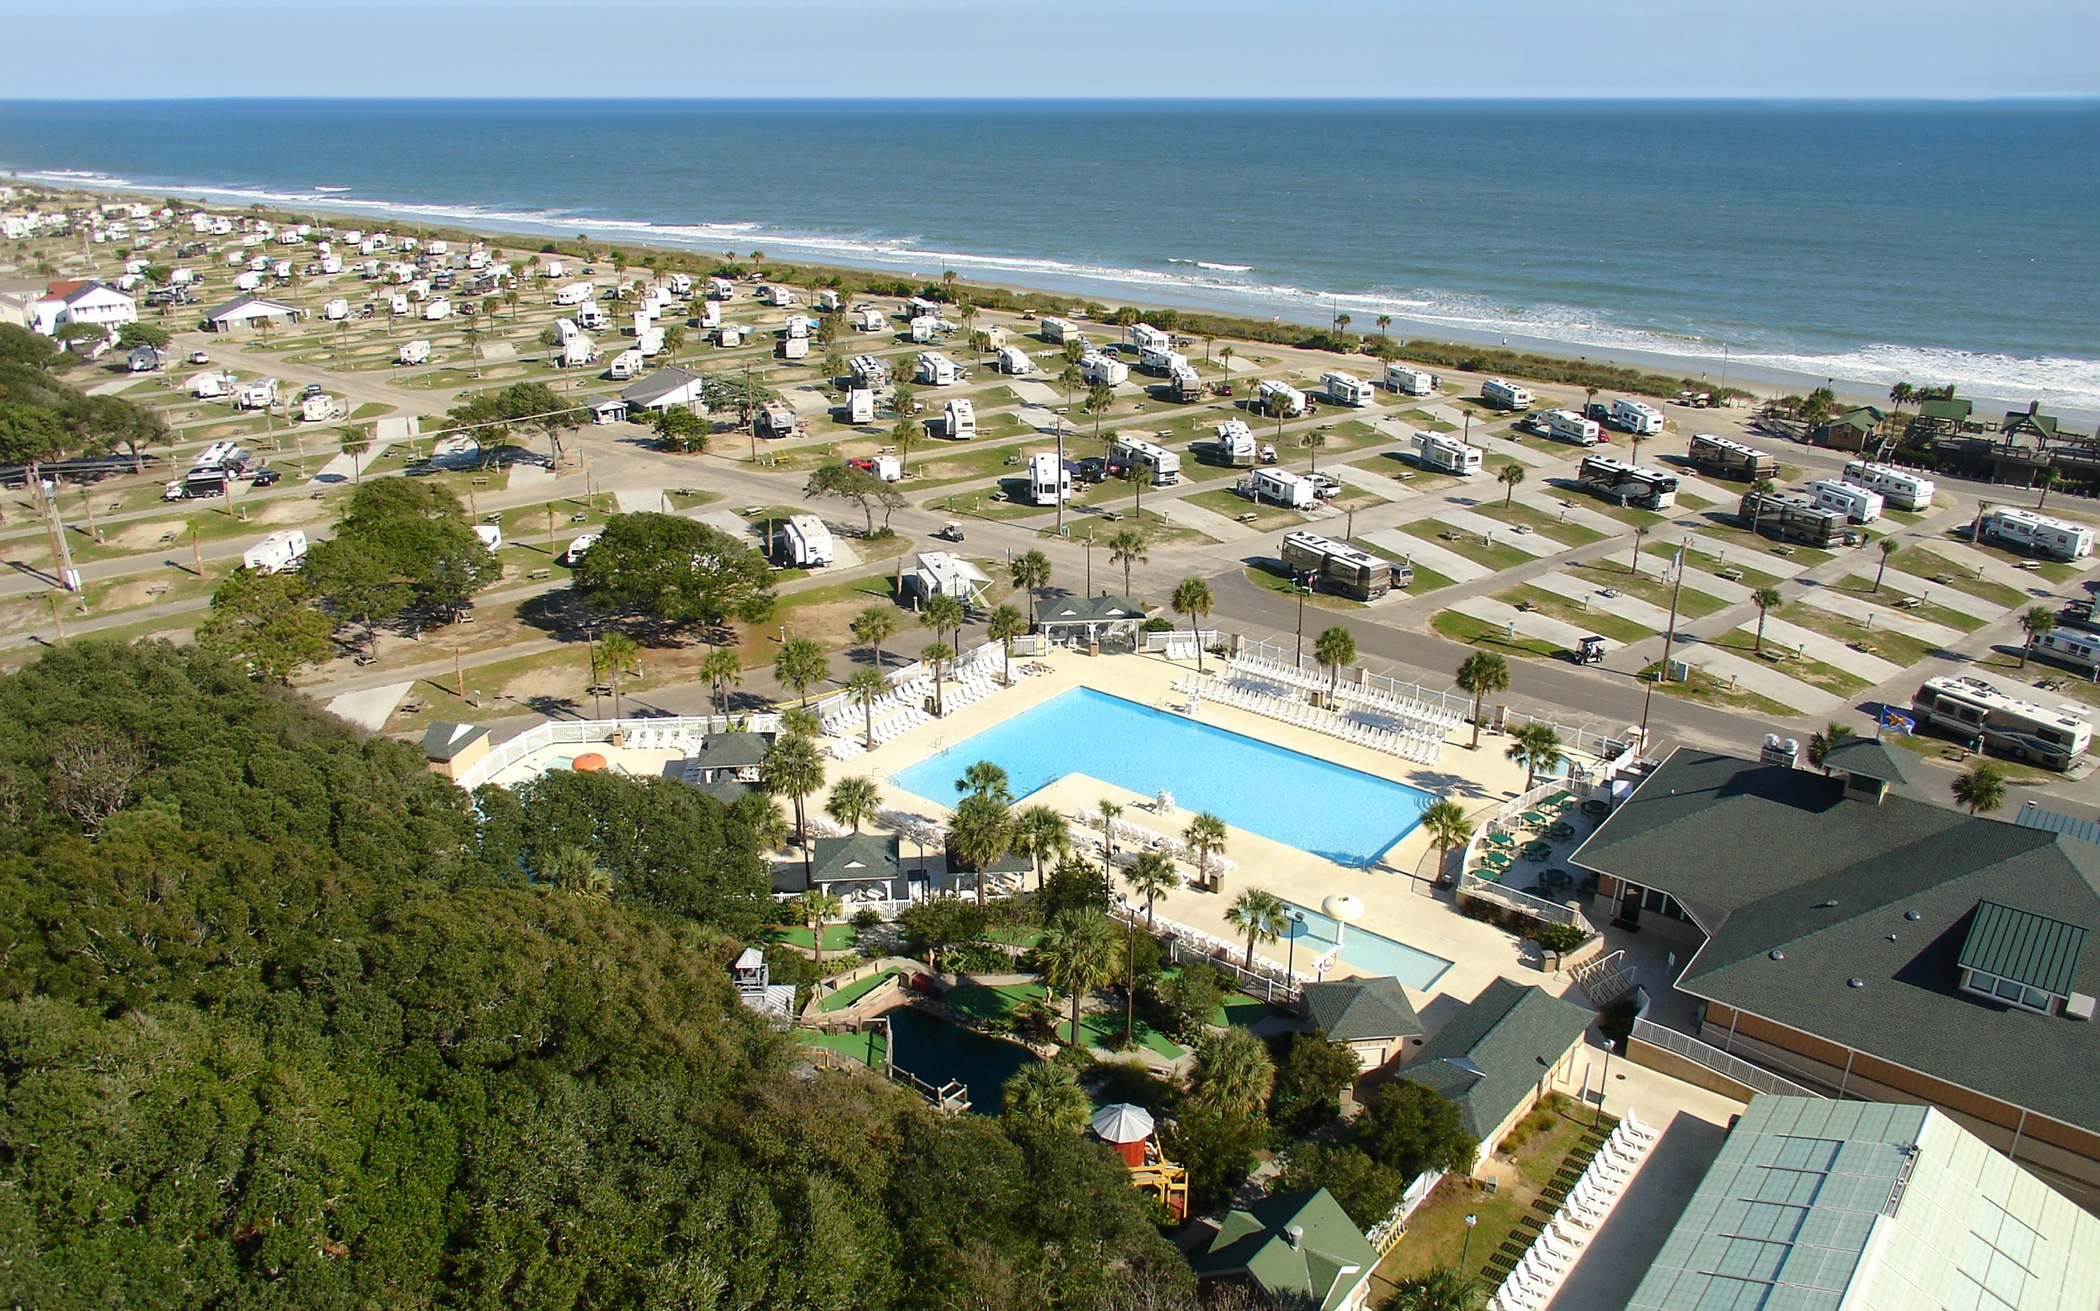 Ocean Lakes Campground In Myrtle Beach South Carolina